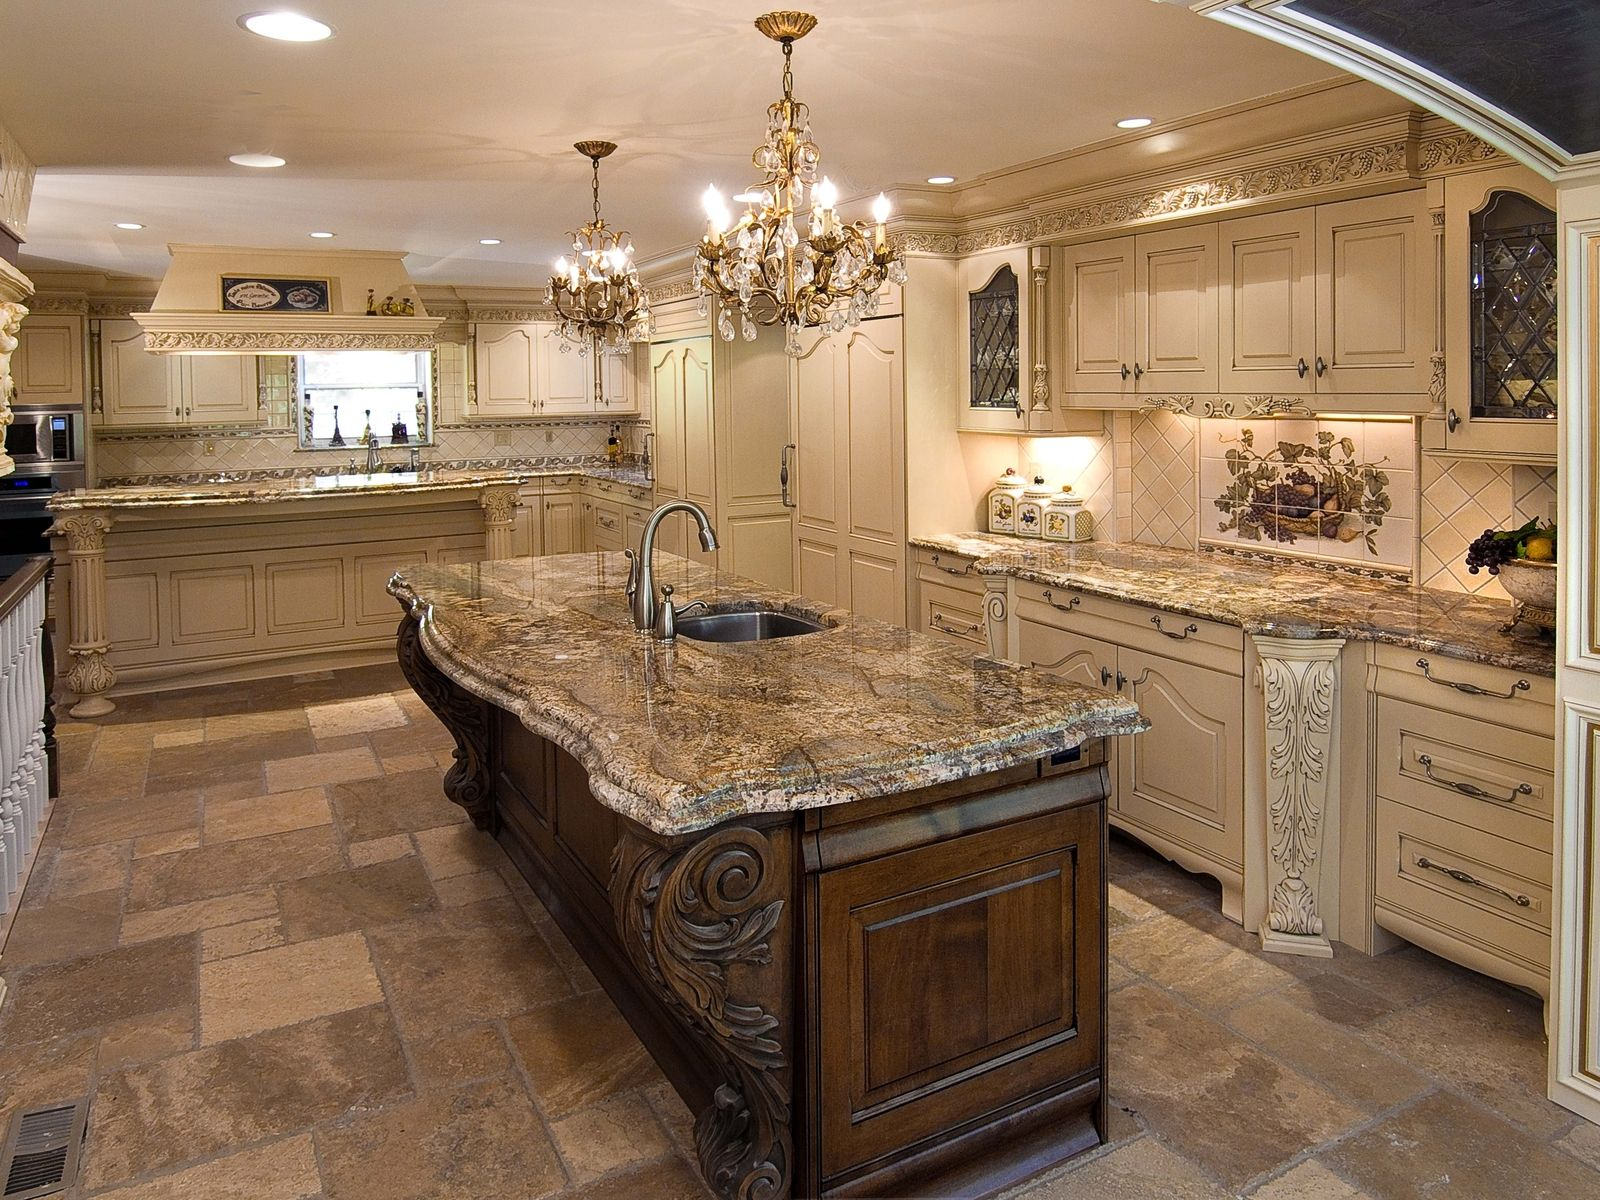 Ornate kitchen cabinets custom made ornate kitchen by for Kitchen furniture images